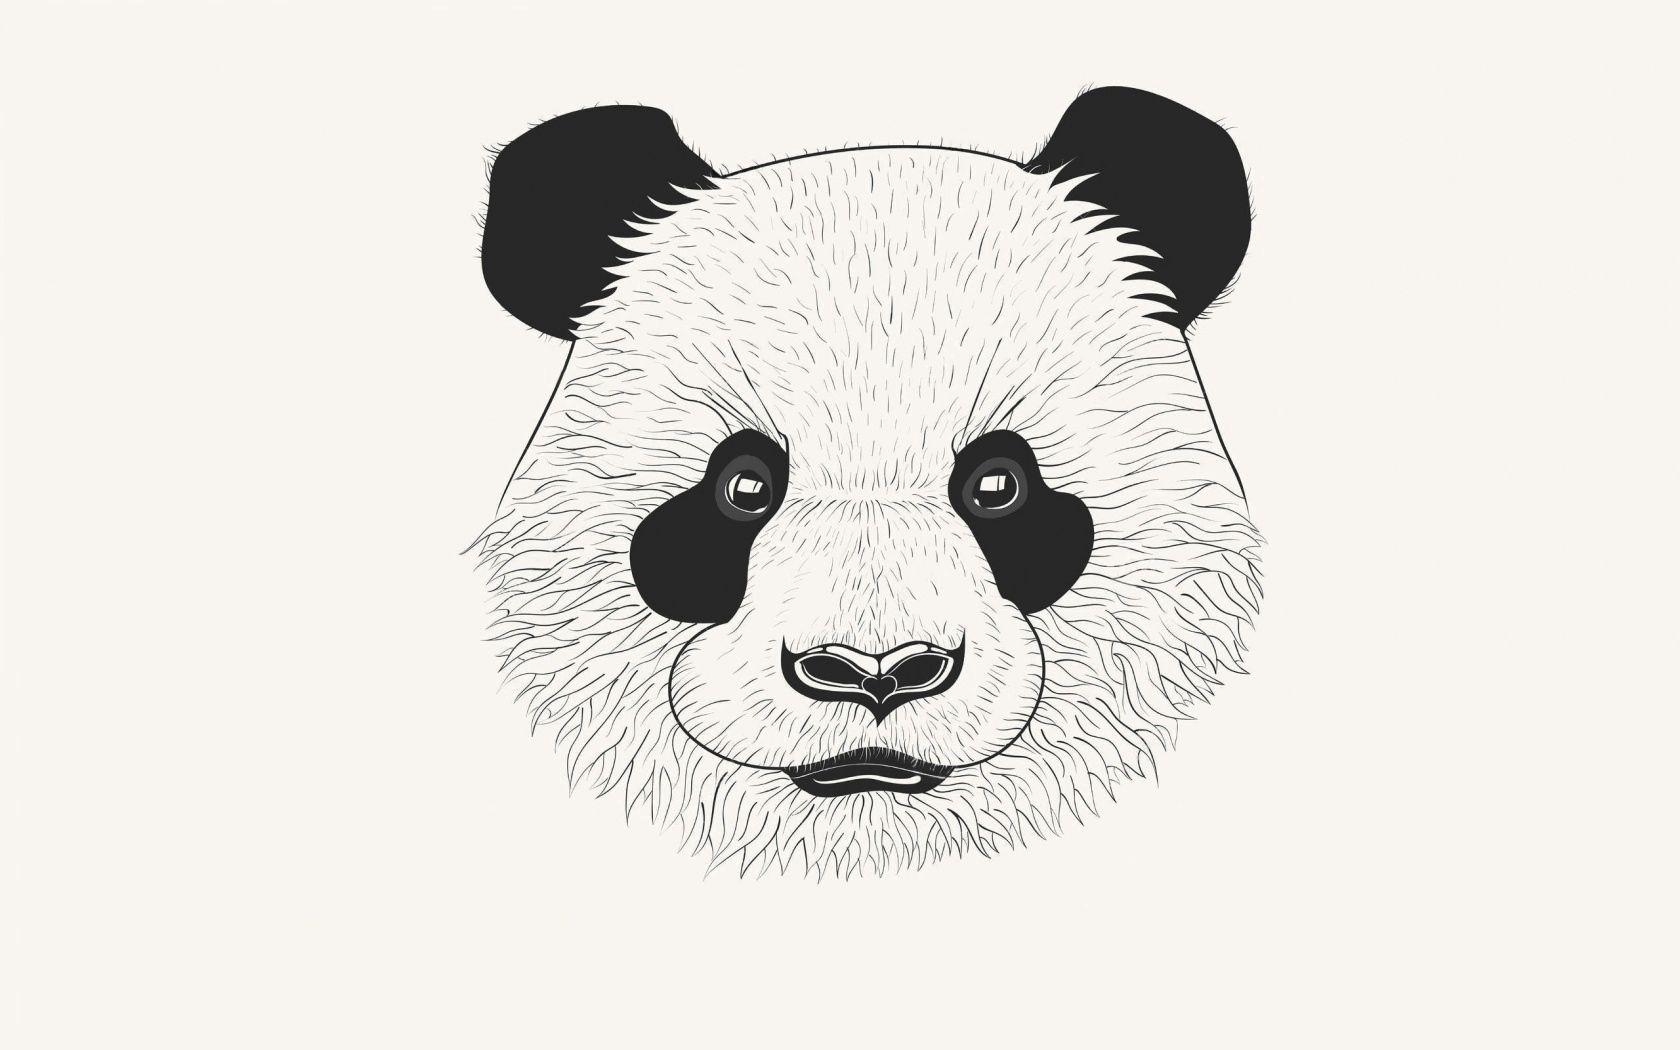 138734 download wallpaper Minimalism, Panda, Art, Muzzle screensavers and pictures for free